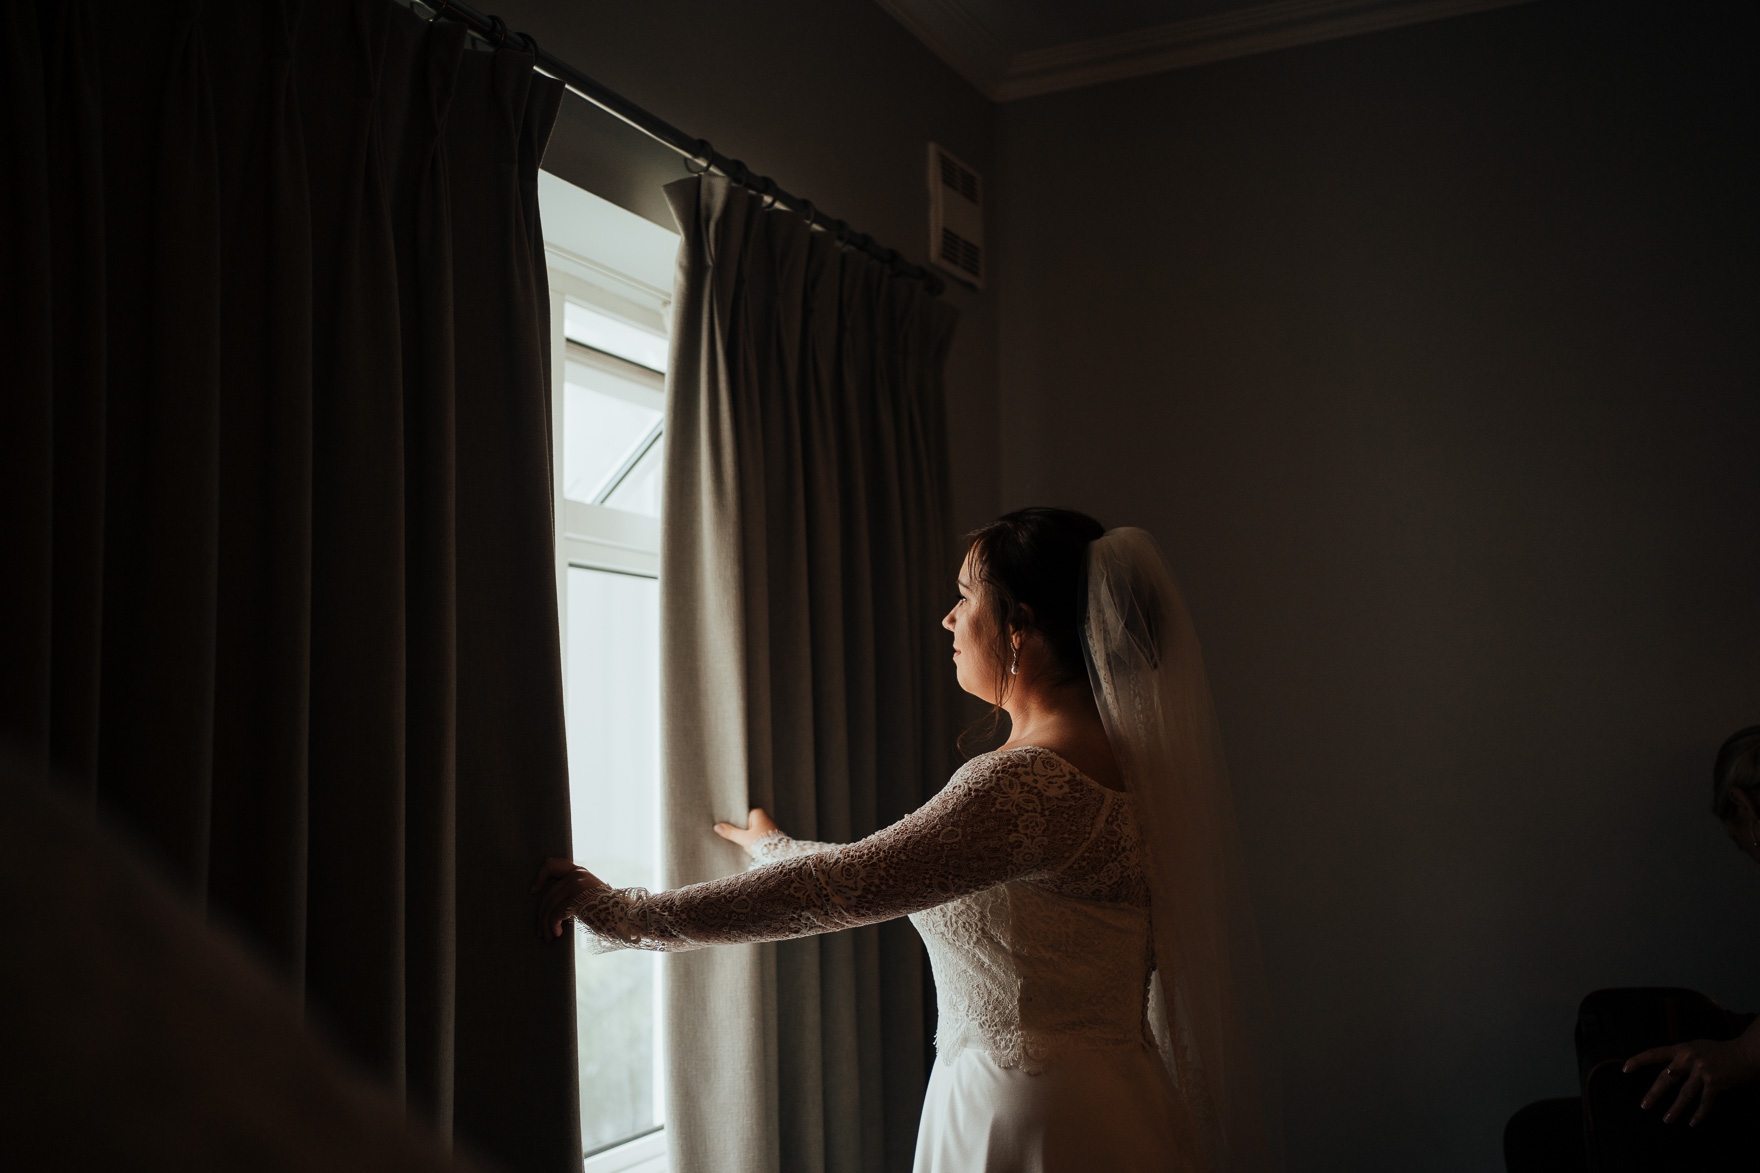 A person standing in front of a window